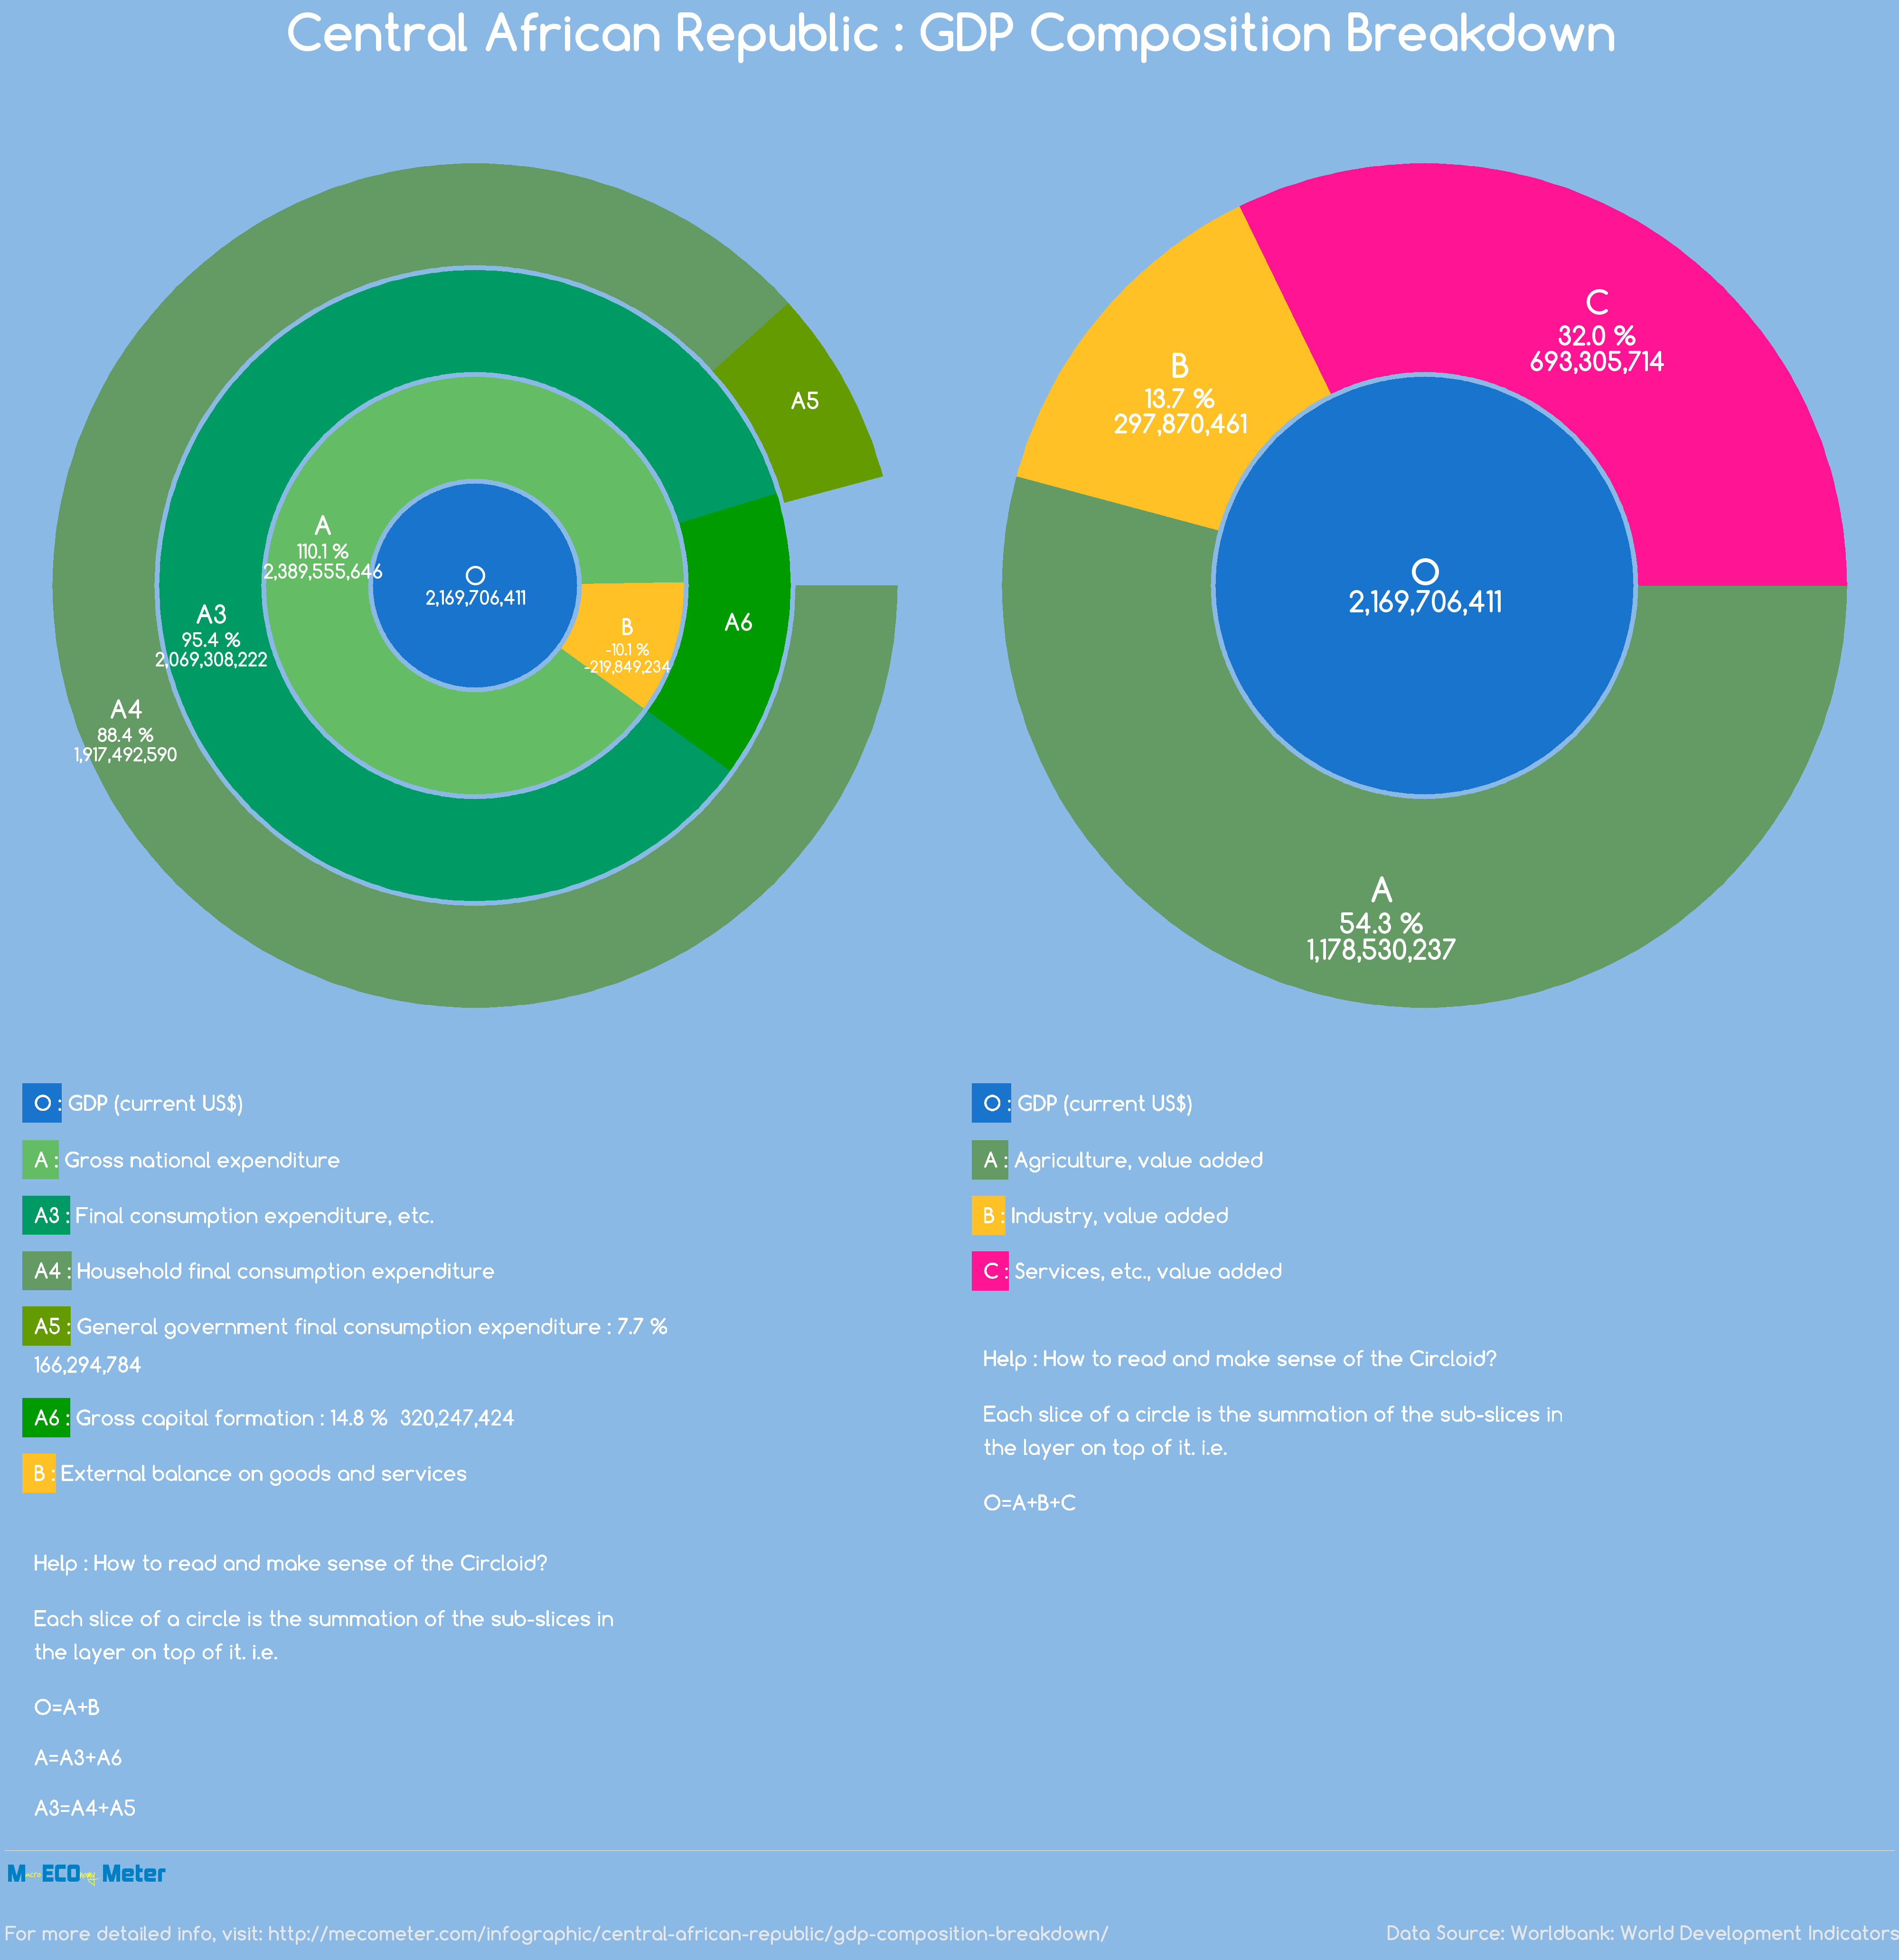 Central African Republic : GDP Composition Breakdown